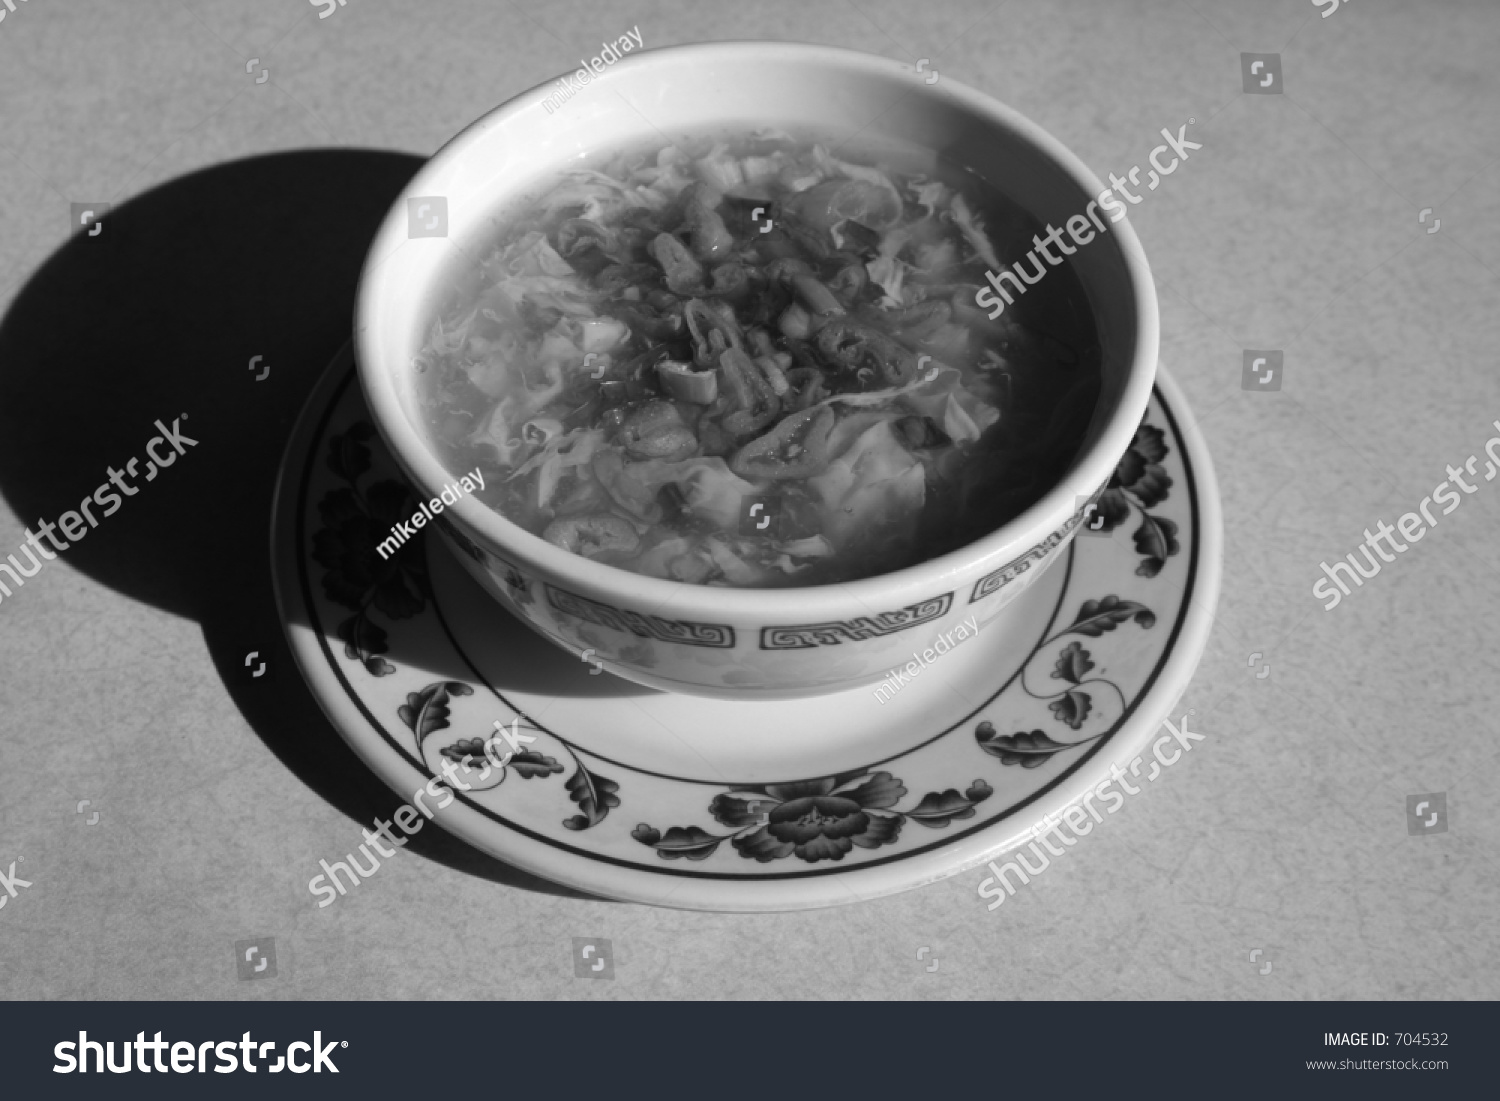 Egg Flower Soup In A Chinese Restaurant In Black And White Stock